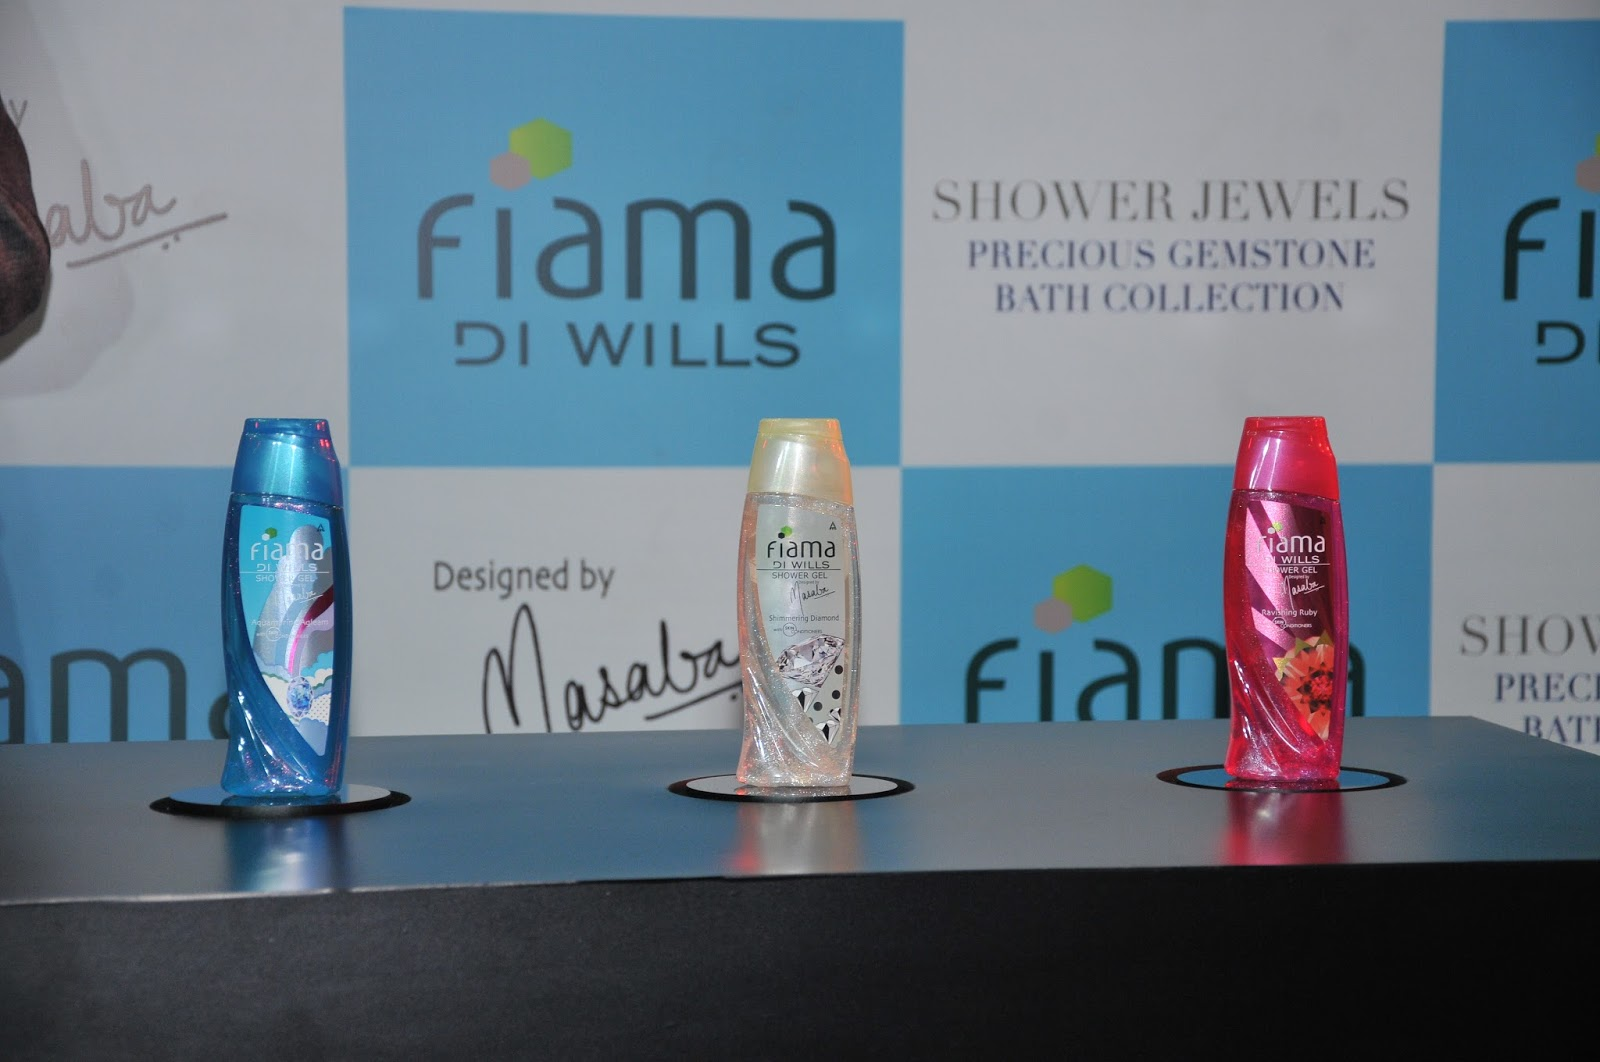 PR:Fiama Di Wills launches 'Shower Jewels' by Masaba Gupta